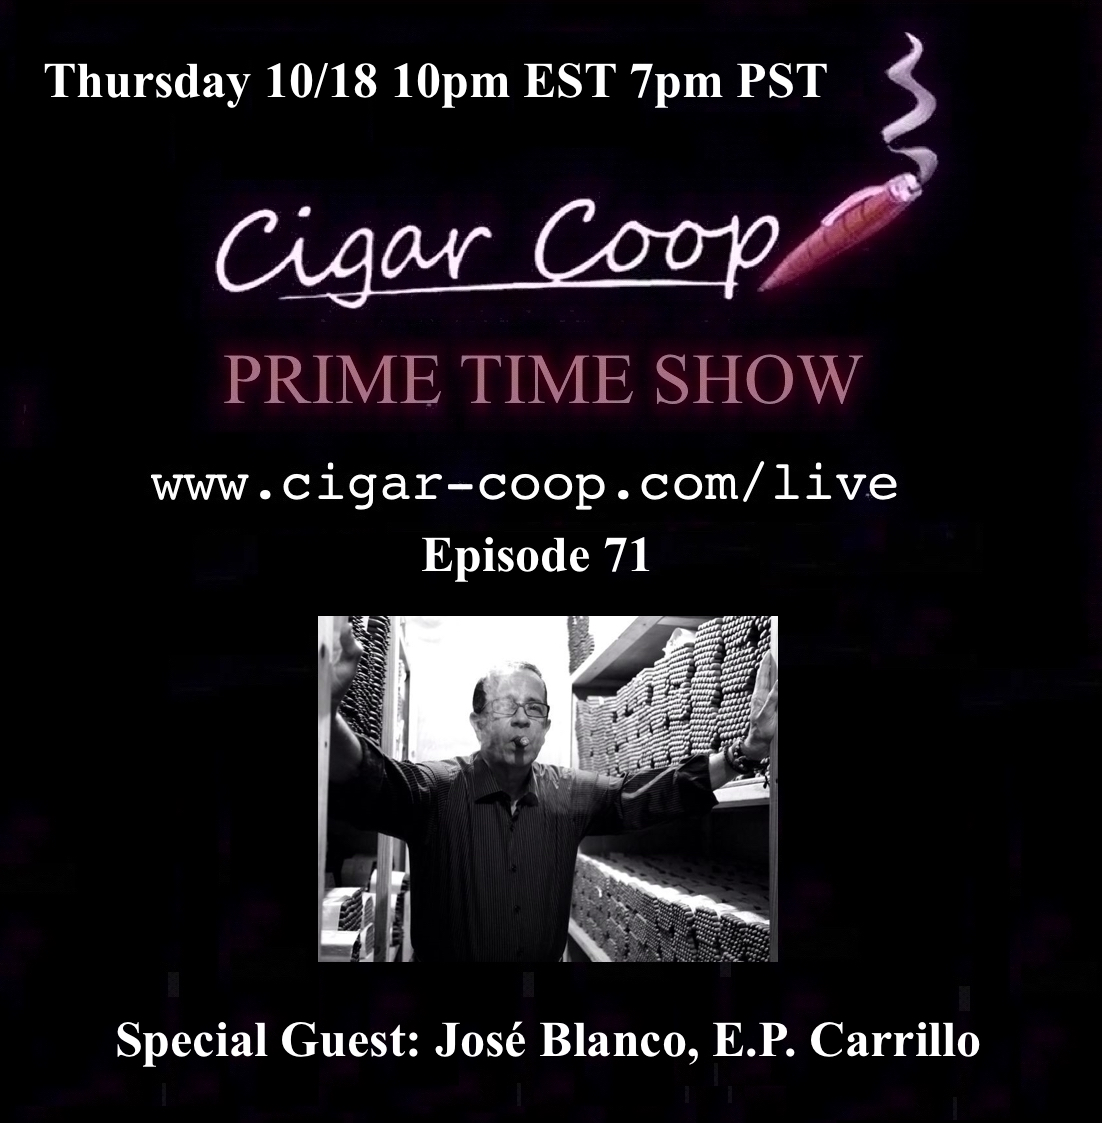 Announcement: Prime Time Episode 71 – Jose Blanco, E.P. Carrillo 10/11 10pm EST 9pm CST